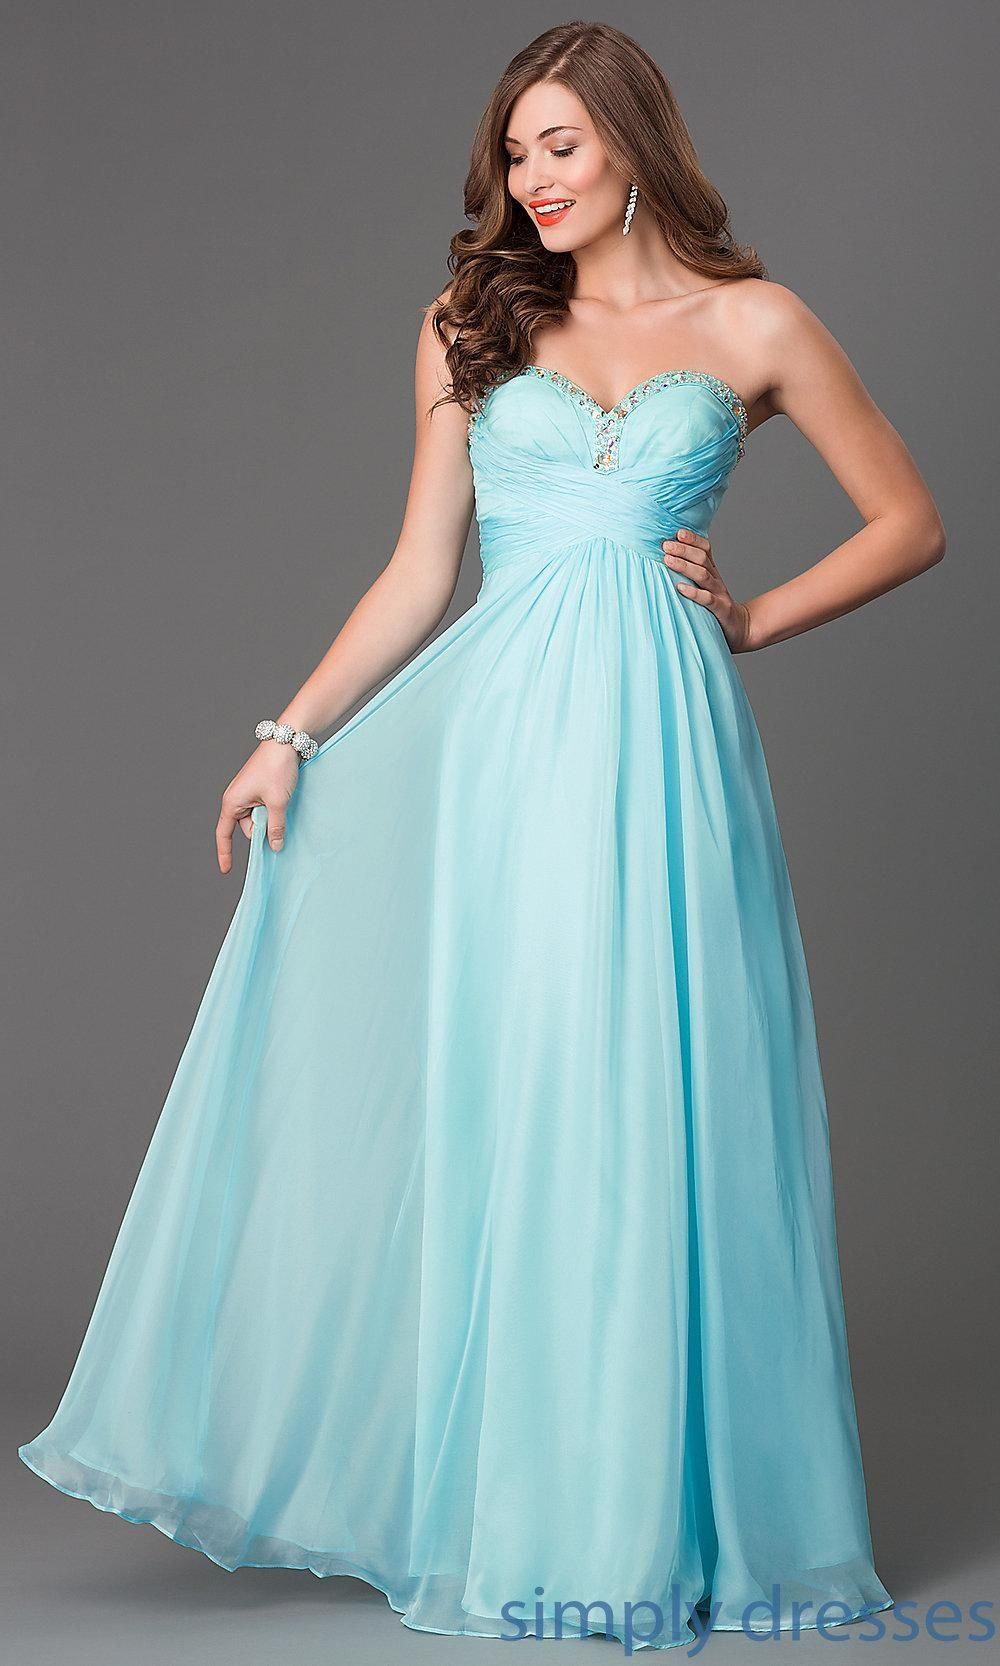 Long Mint Strapless Prom Dress - Brought to you by Avarsha.com ...